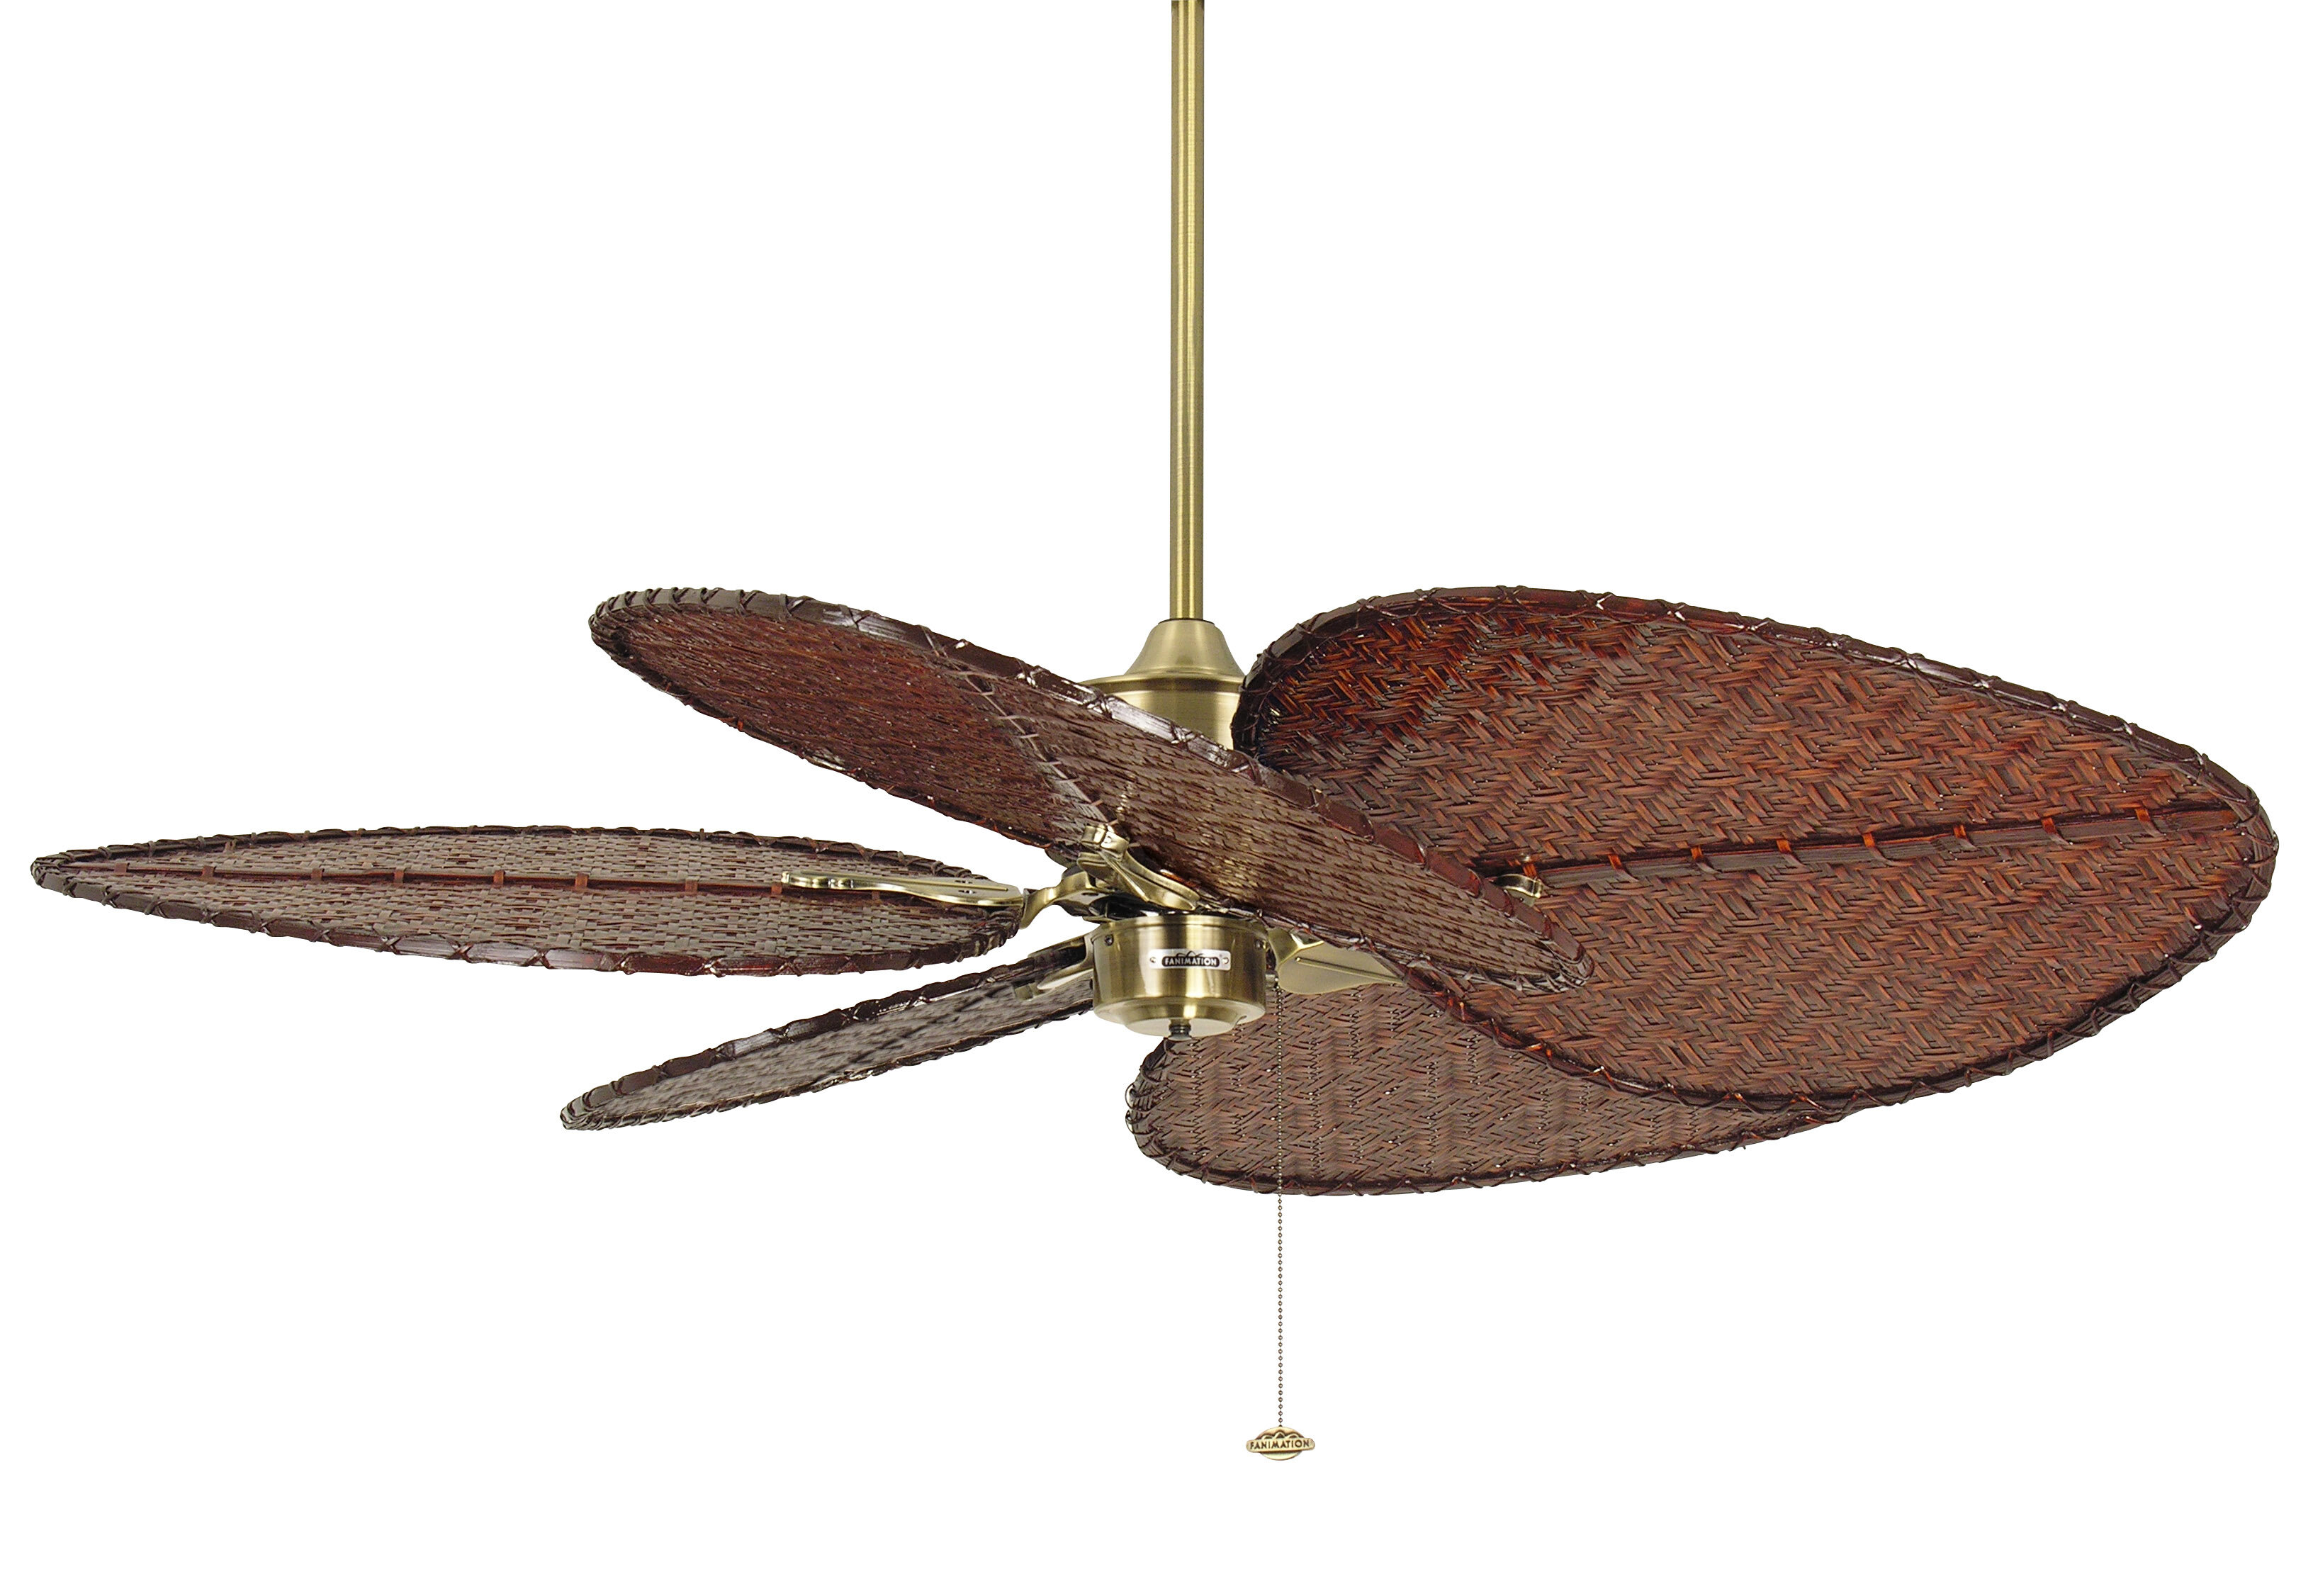 maine size fan glamorous draft off infinity war lowes turn full nfl home images design depot ceiling fans light at hunter marjory kit stoneman suspect will not marvellous police avengers of inch parts douglas